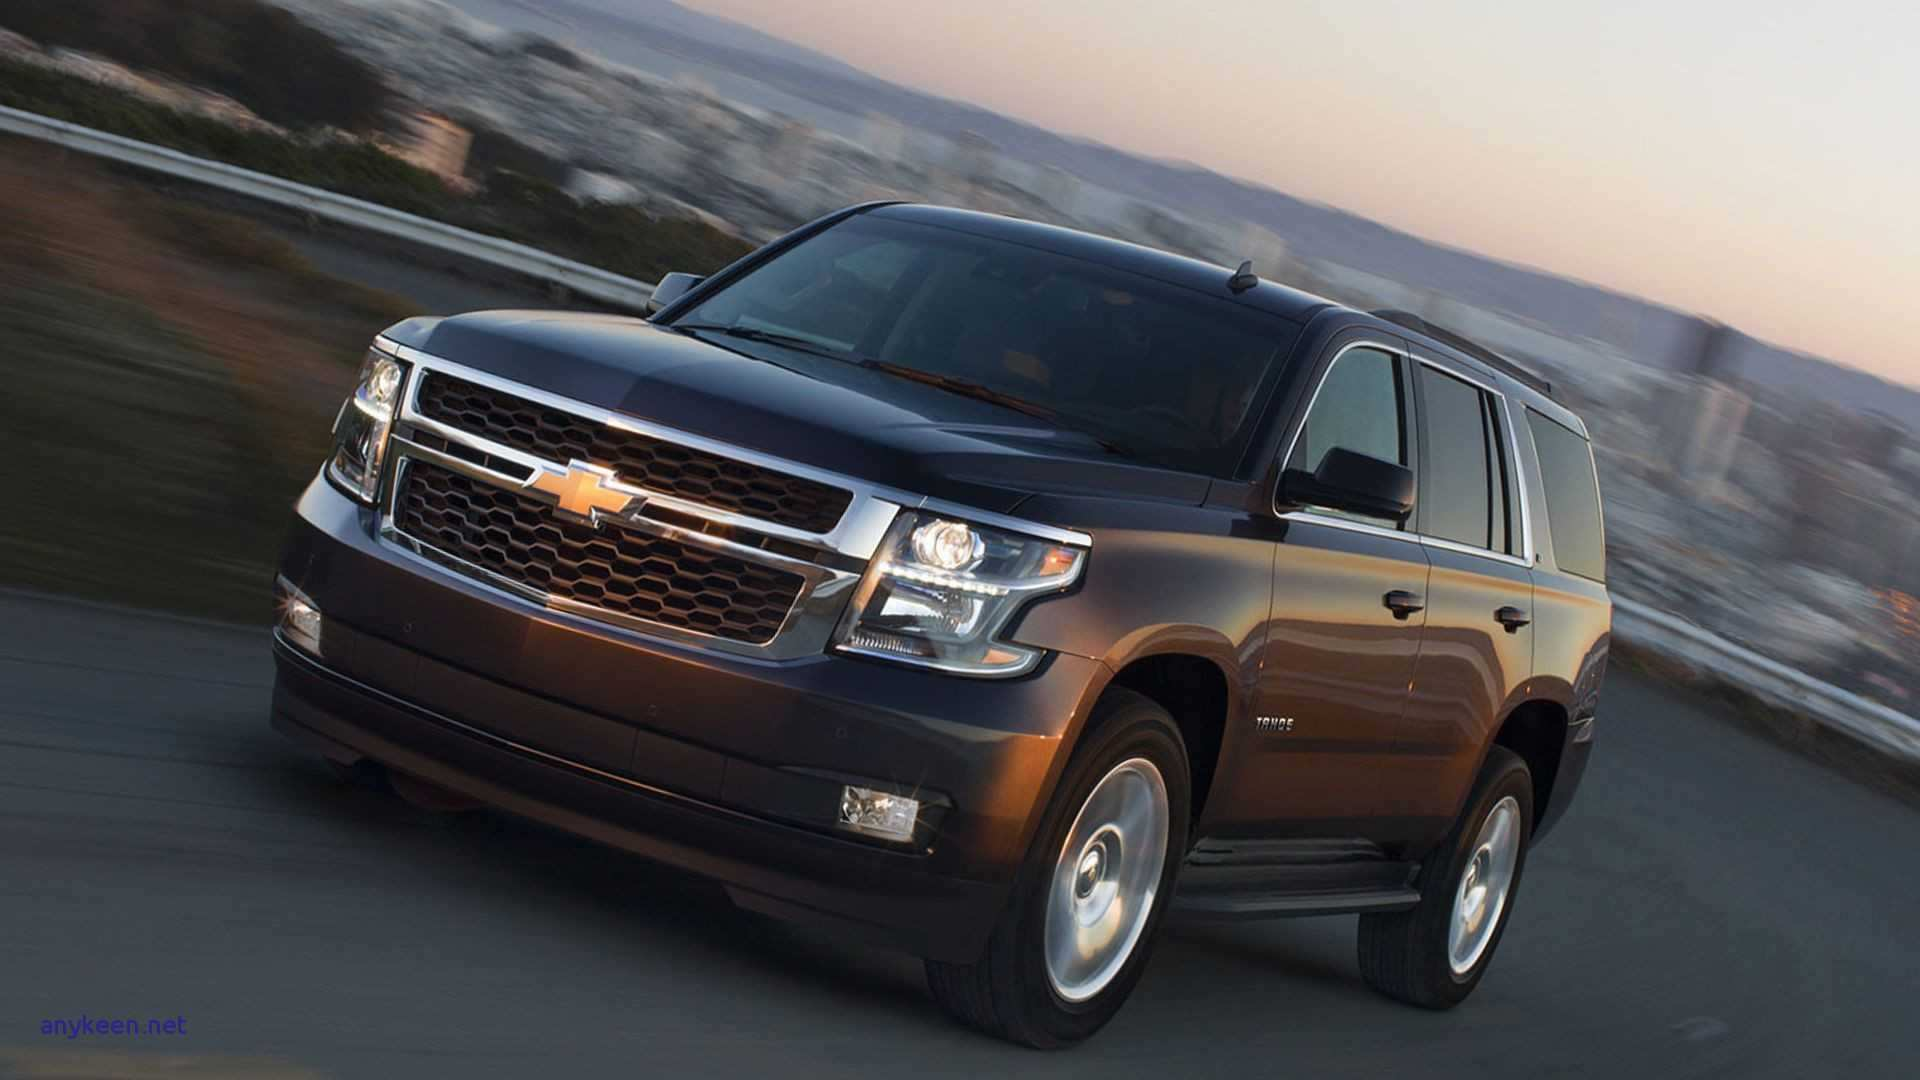 21 Great New Chevrolet 2019 Tahoe Concept Pricing by New Chevrolet 2019 Tahoe Concept